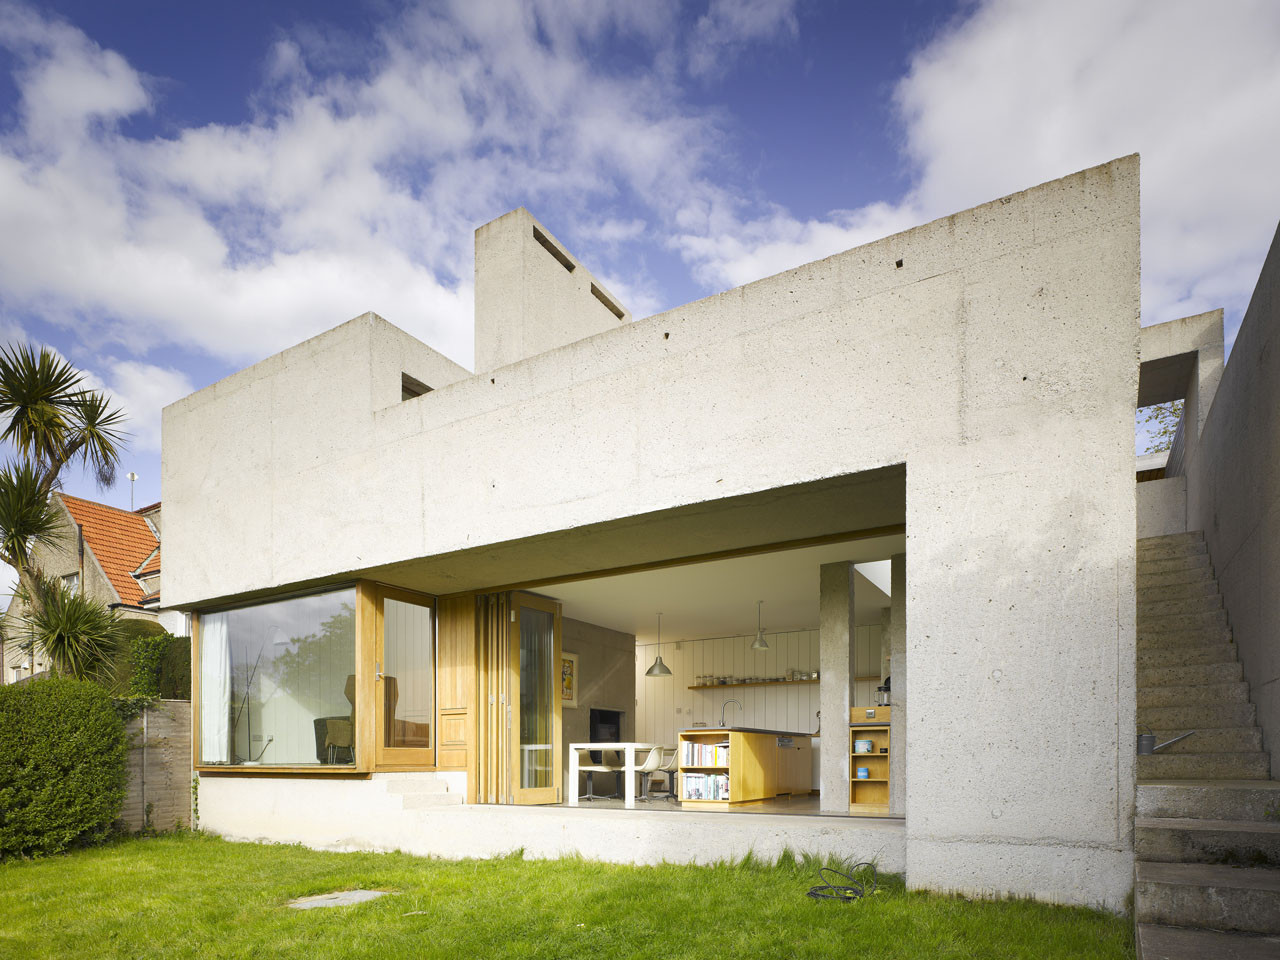 Recasting / Donaghy & Dimond Architects, © Ros Kavanagh